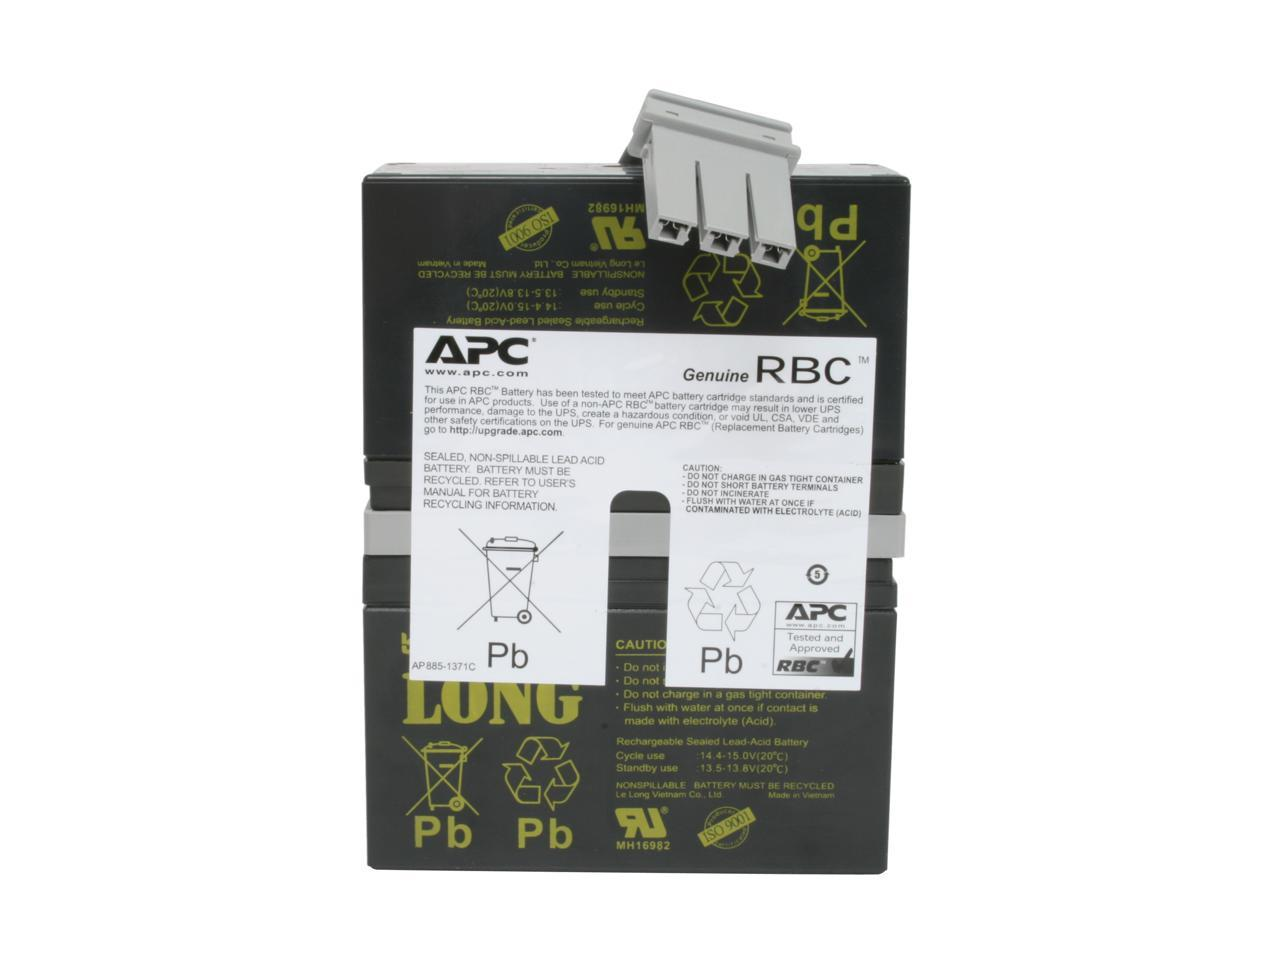 New UPSBatteryCenter RBC32 Battery Pack for APC Back-UPS 1200VA 120V Canada Compatible Replacement BX1200-CN